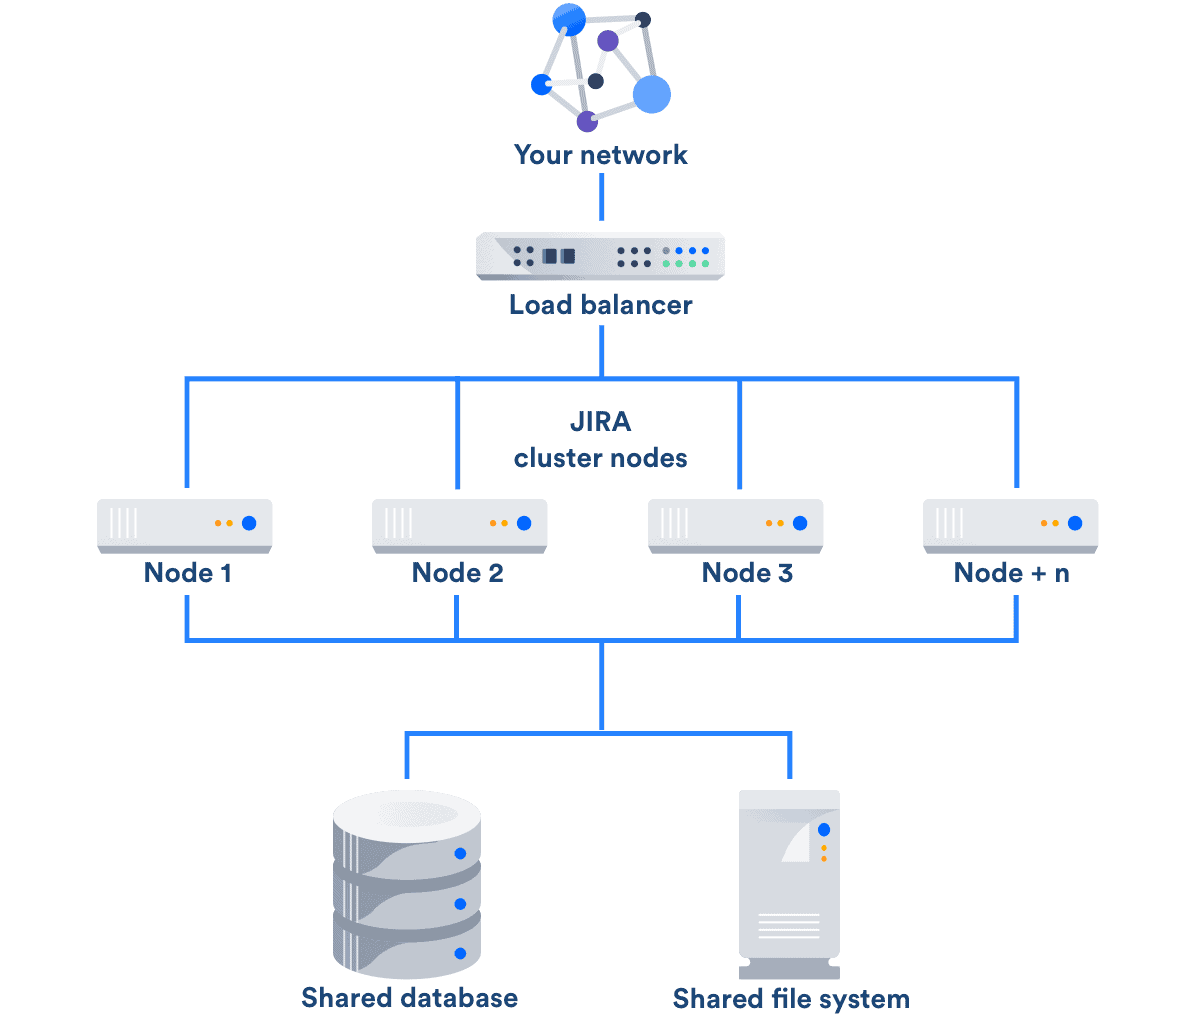 jira data center deployment